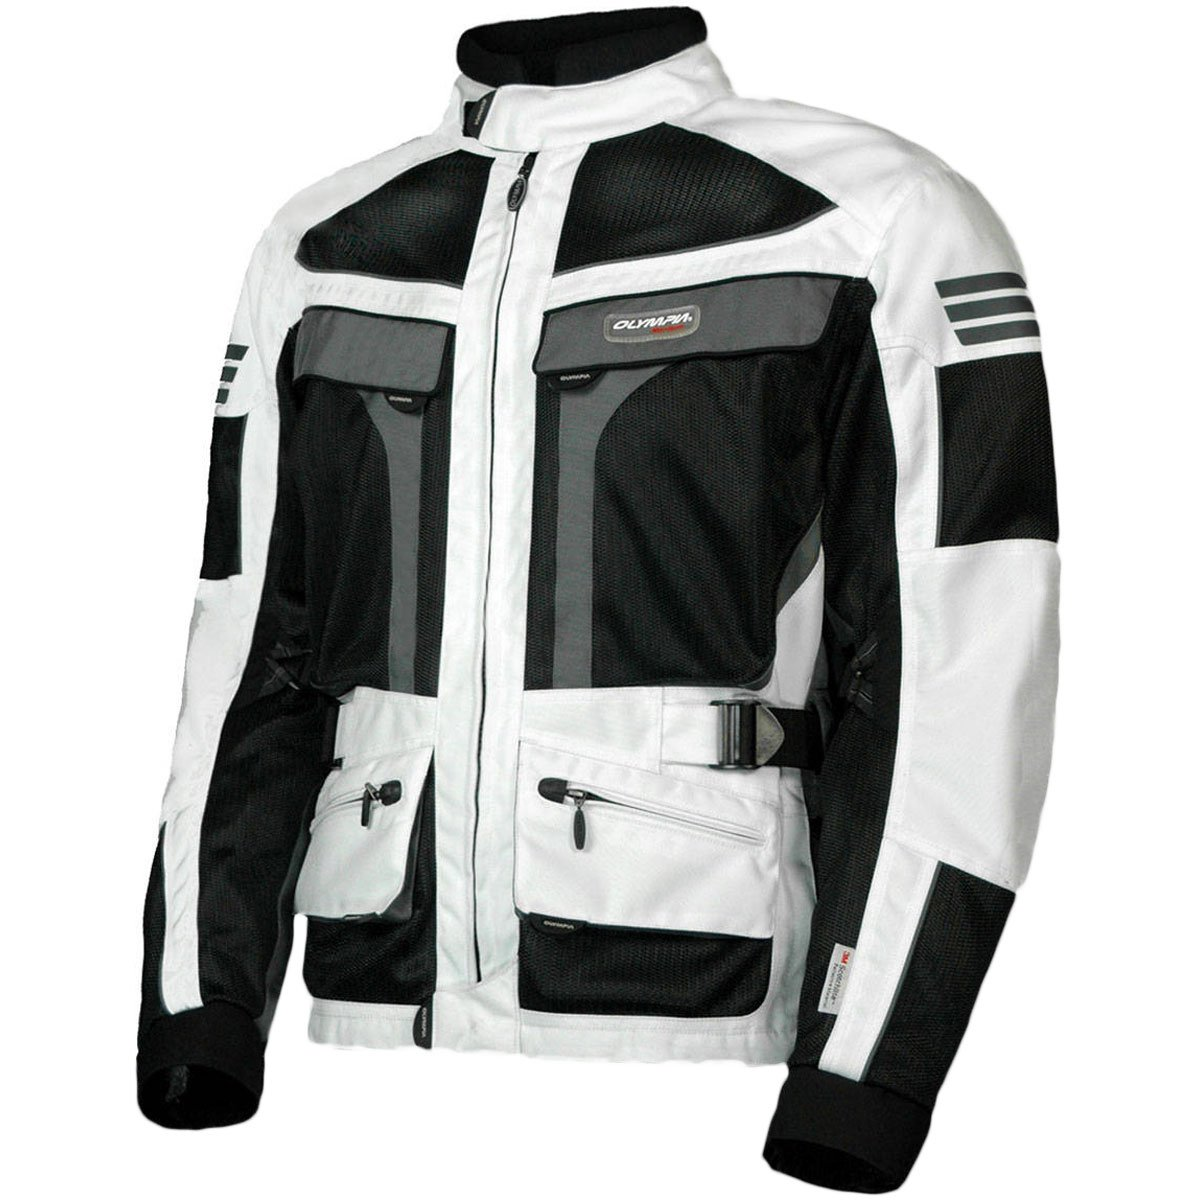 Olympia Moto Sports MJ222 Men's Dakar Dual Sport Mesh Tech Jacket (Ivory/Black, Large) by Olympia Moto Sports